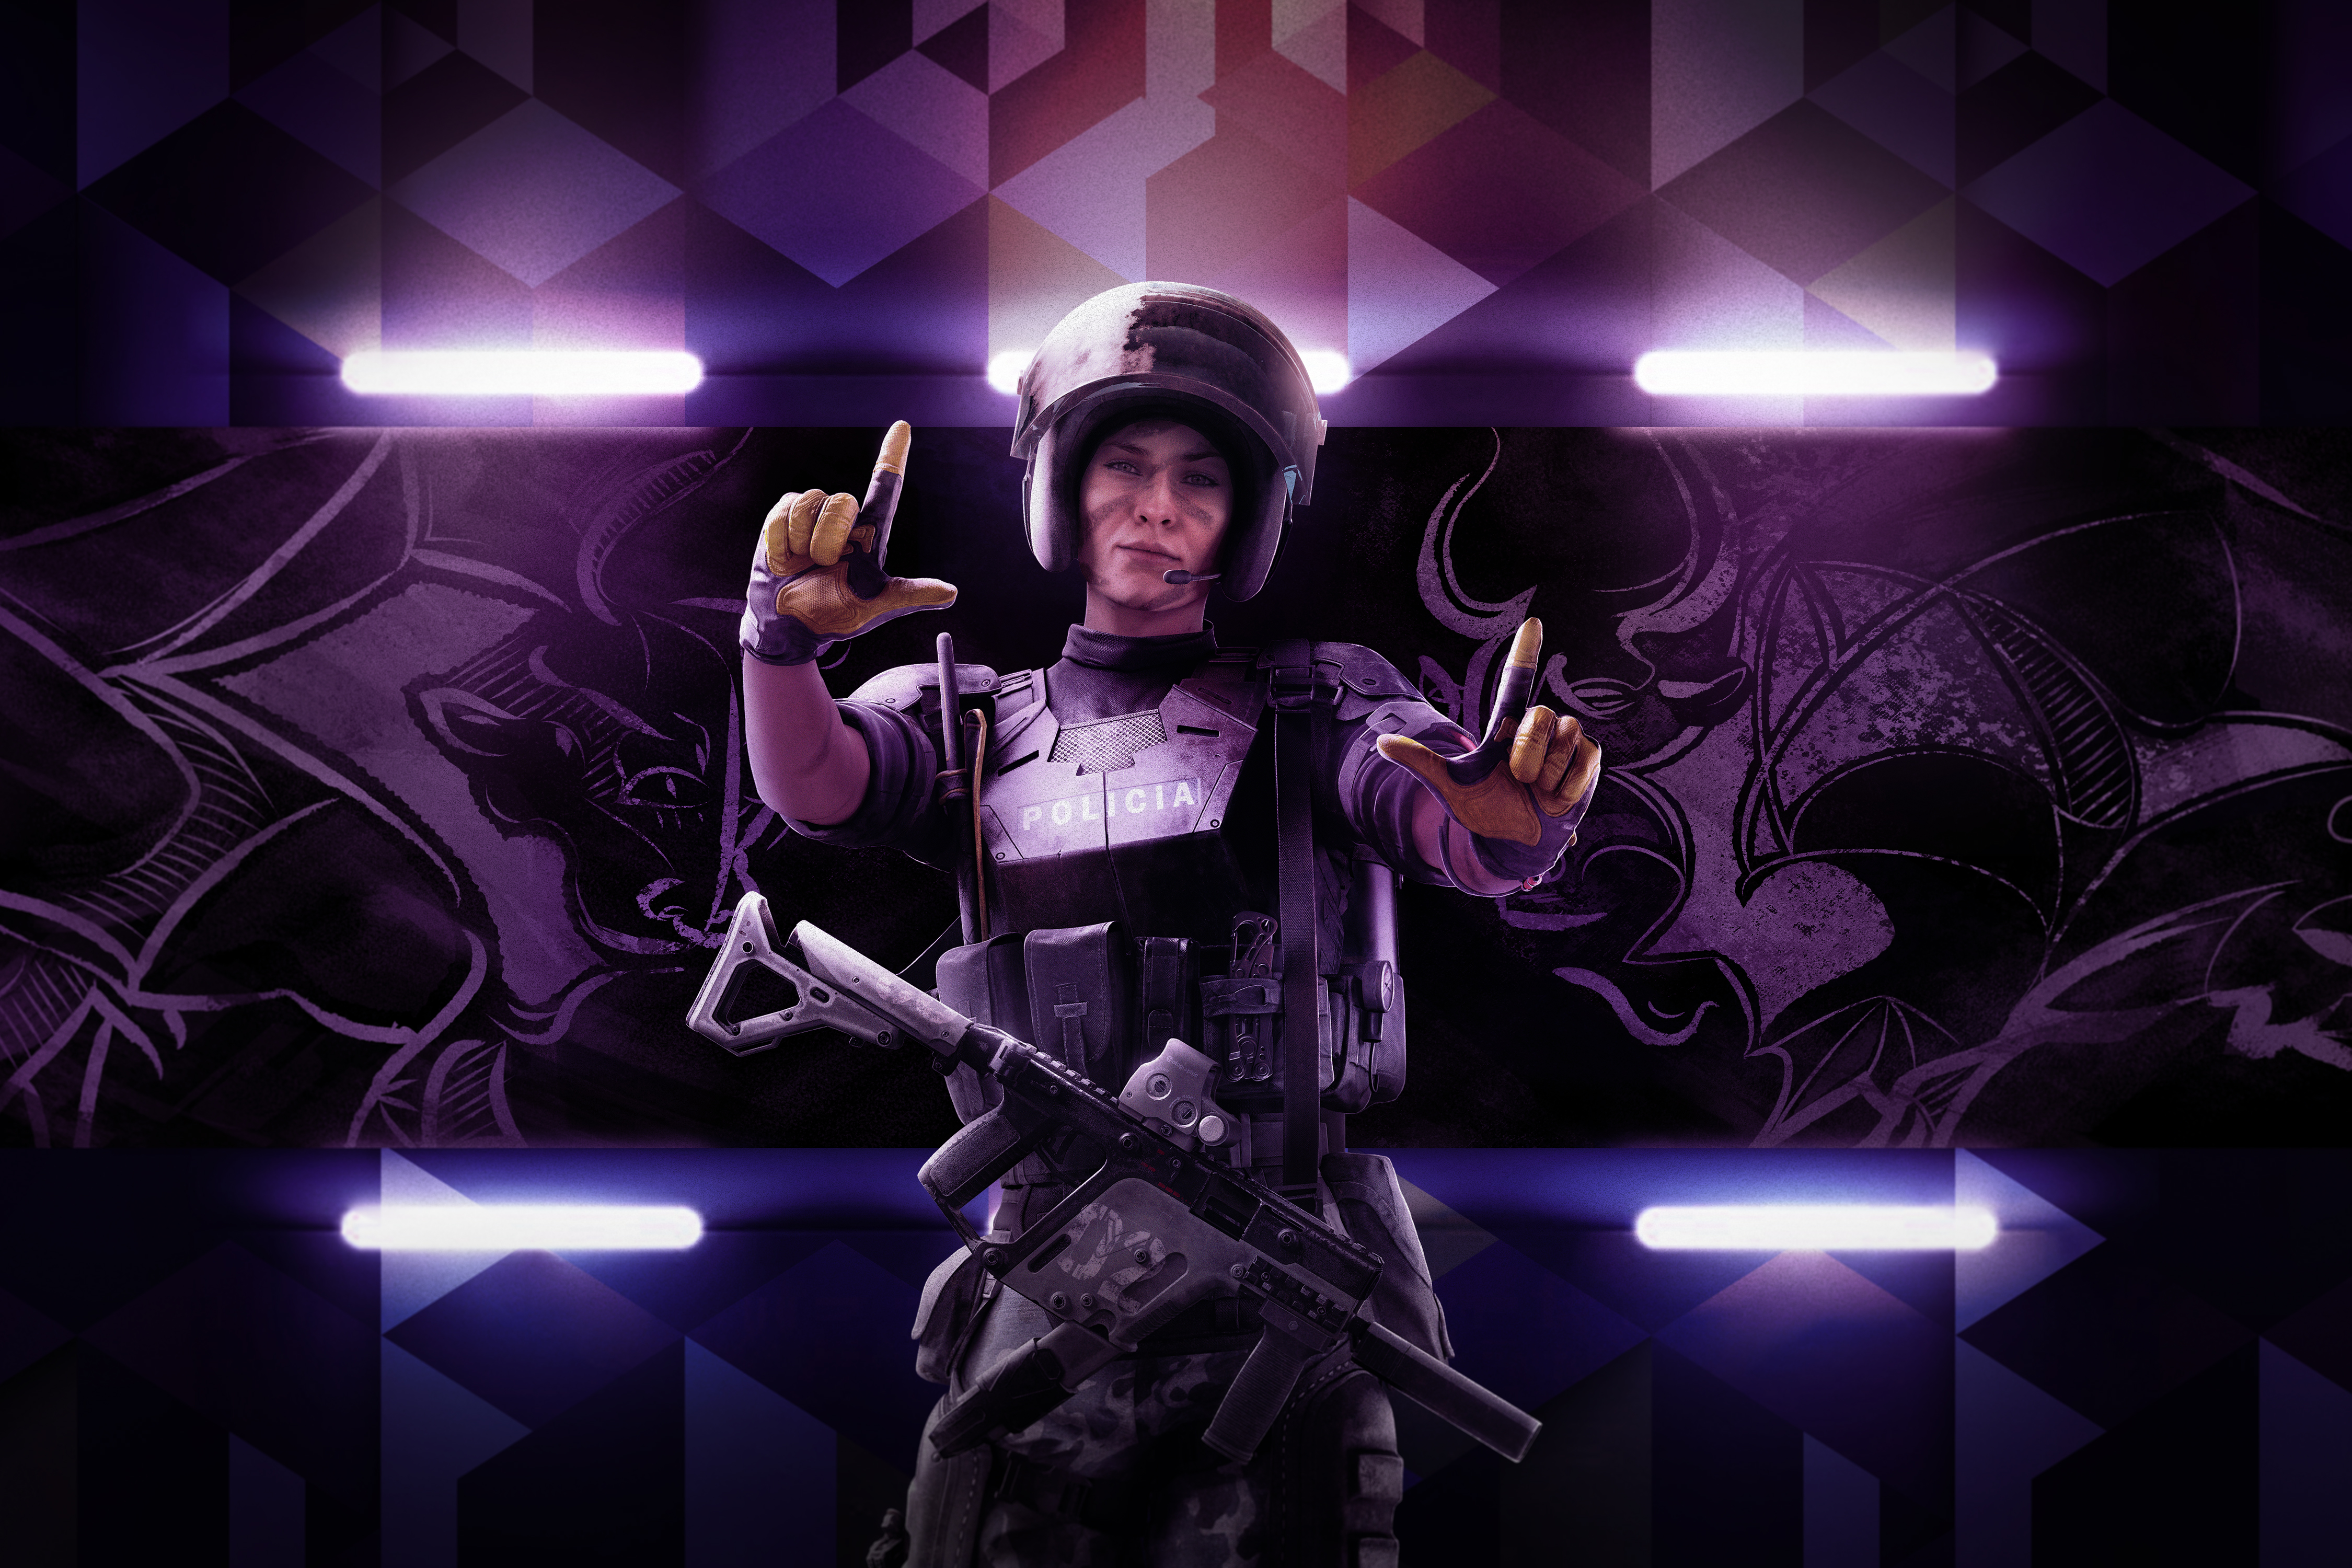 Mira, Mira on the wall. Whos the thiccest of them all